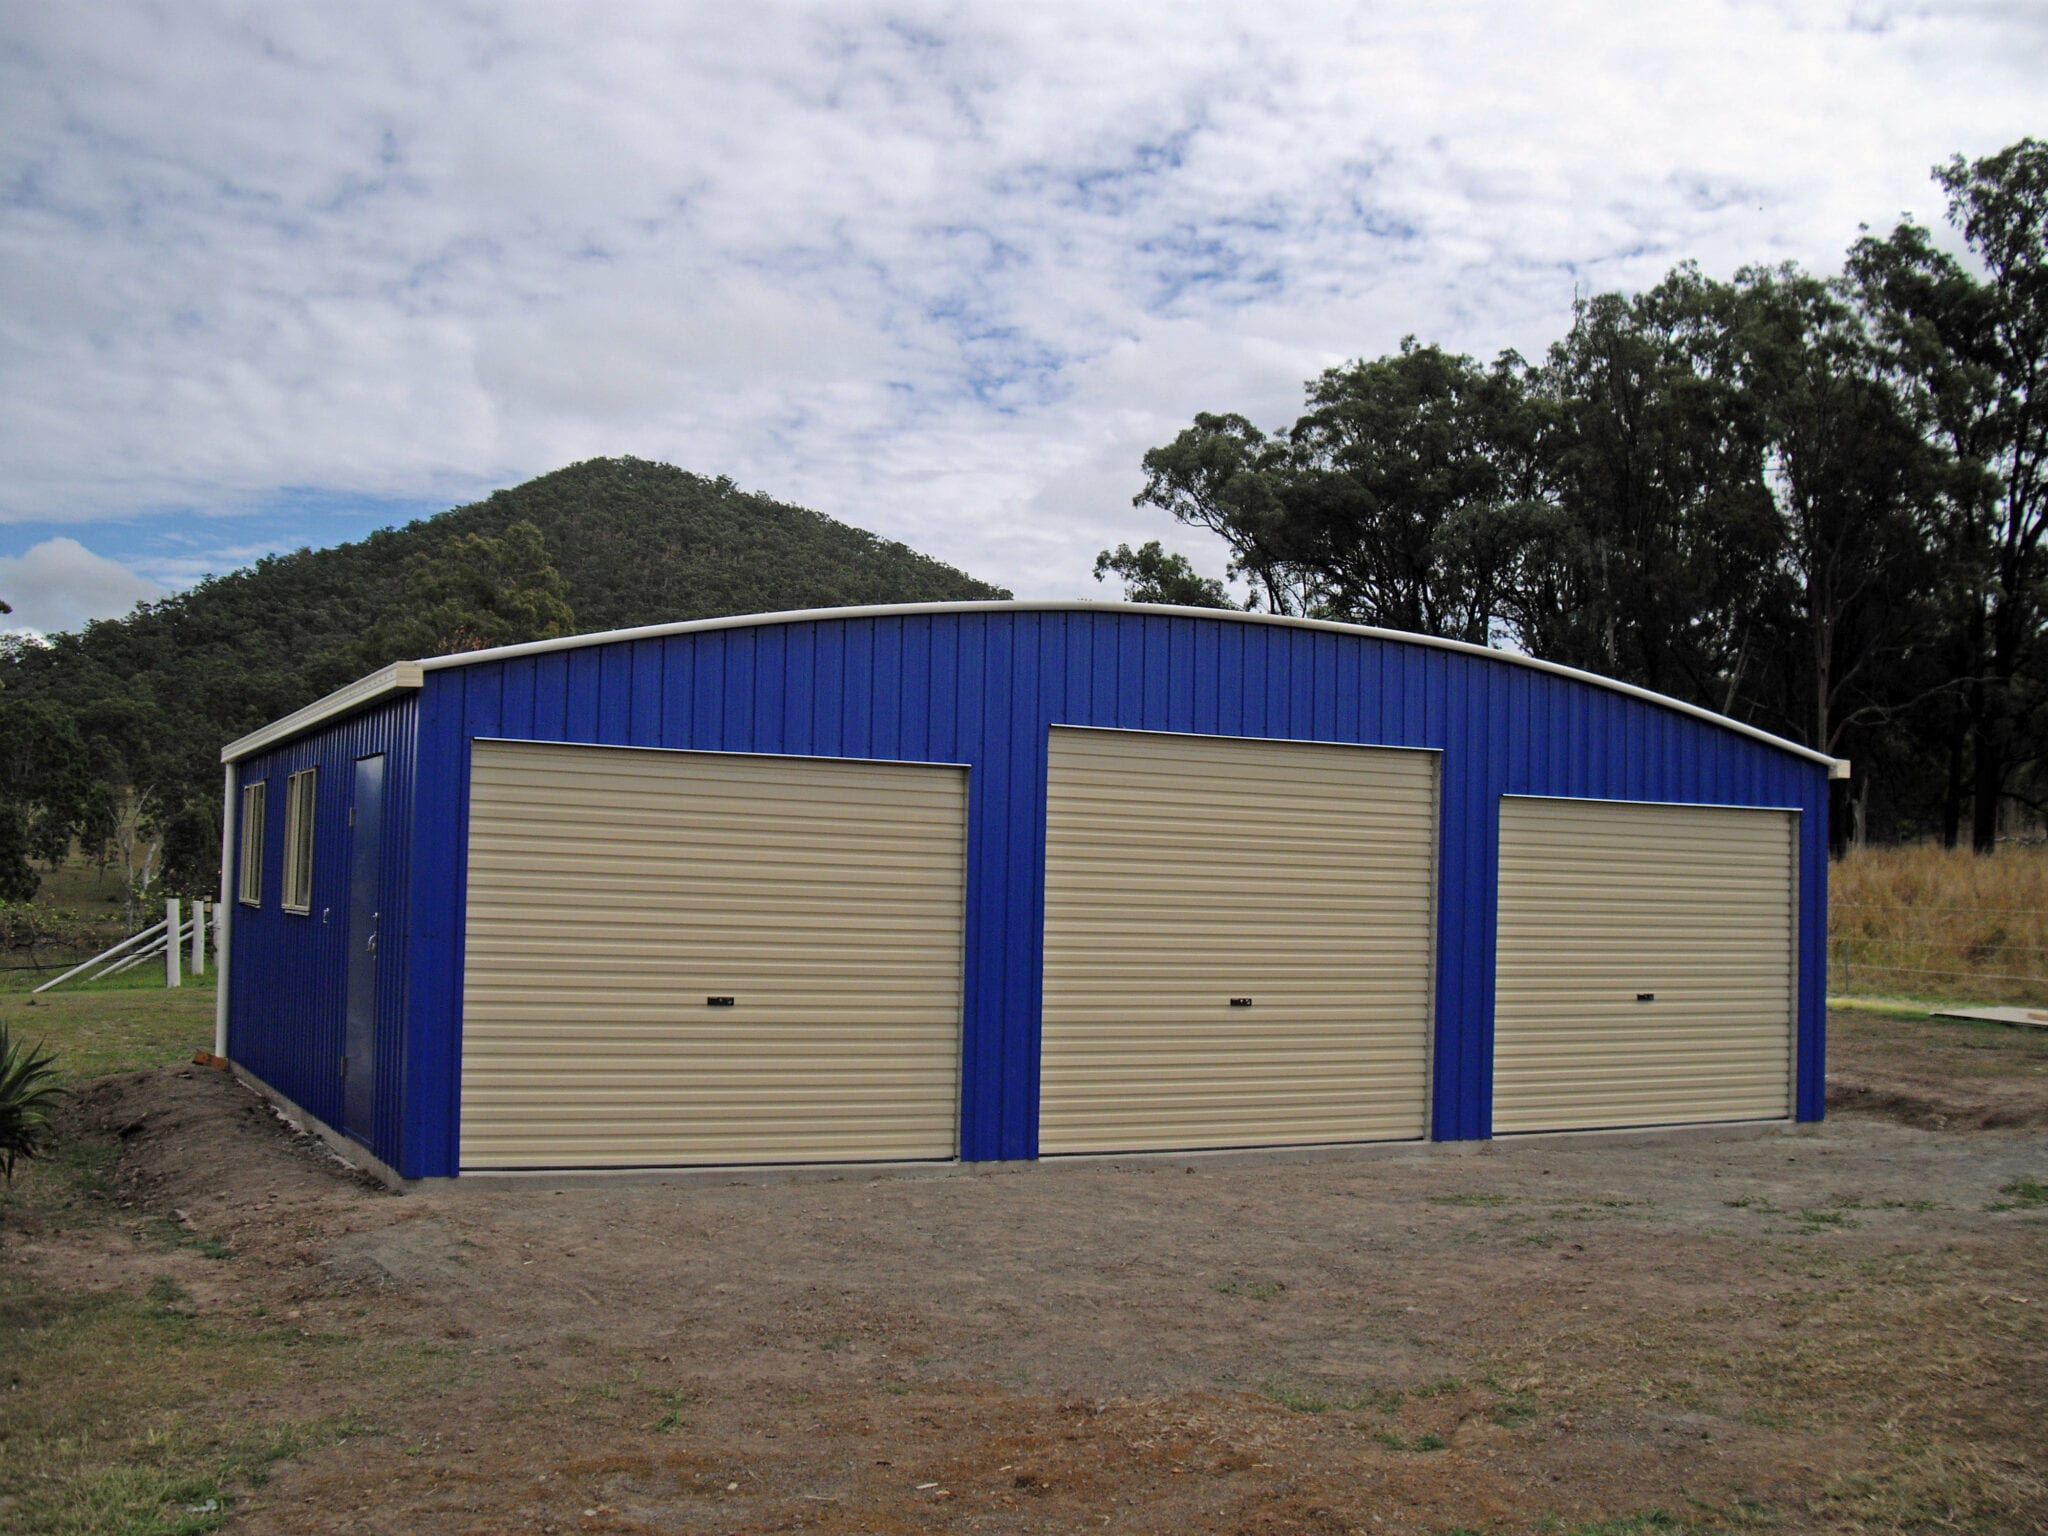 Curved blue shed 3x rollerdoors